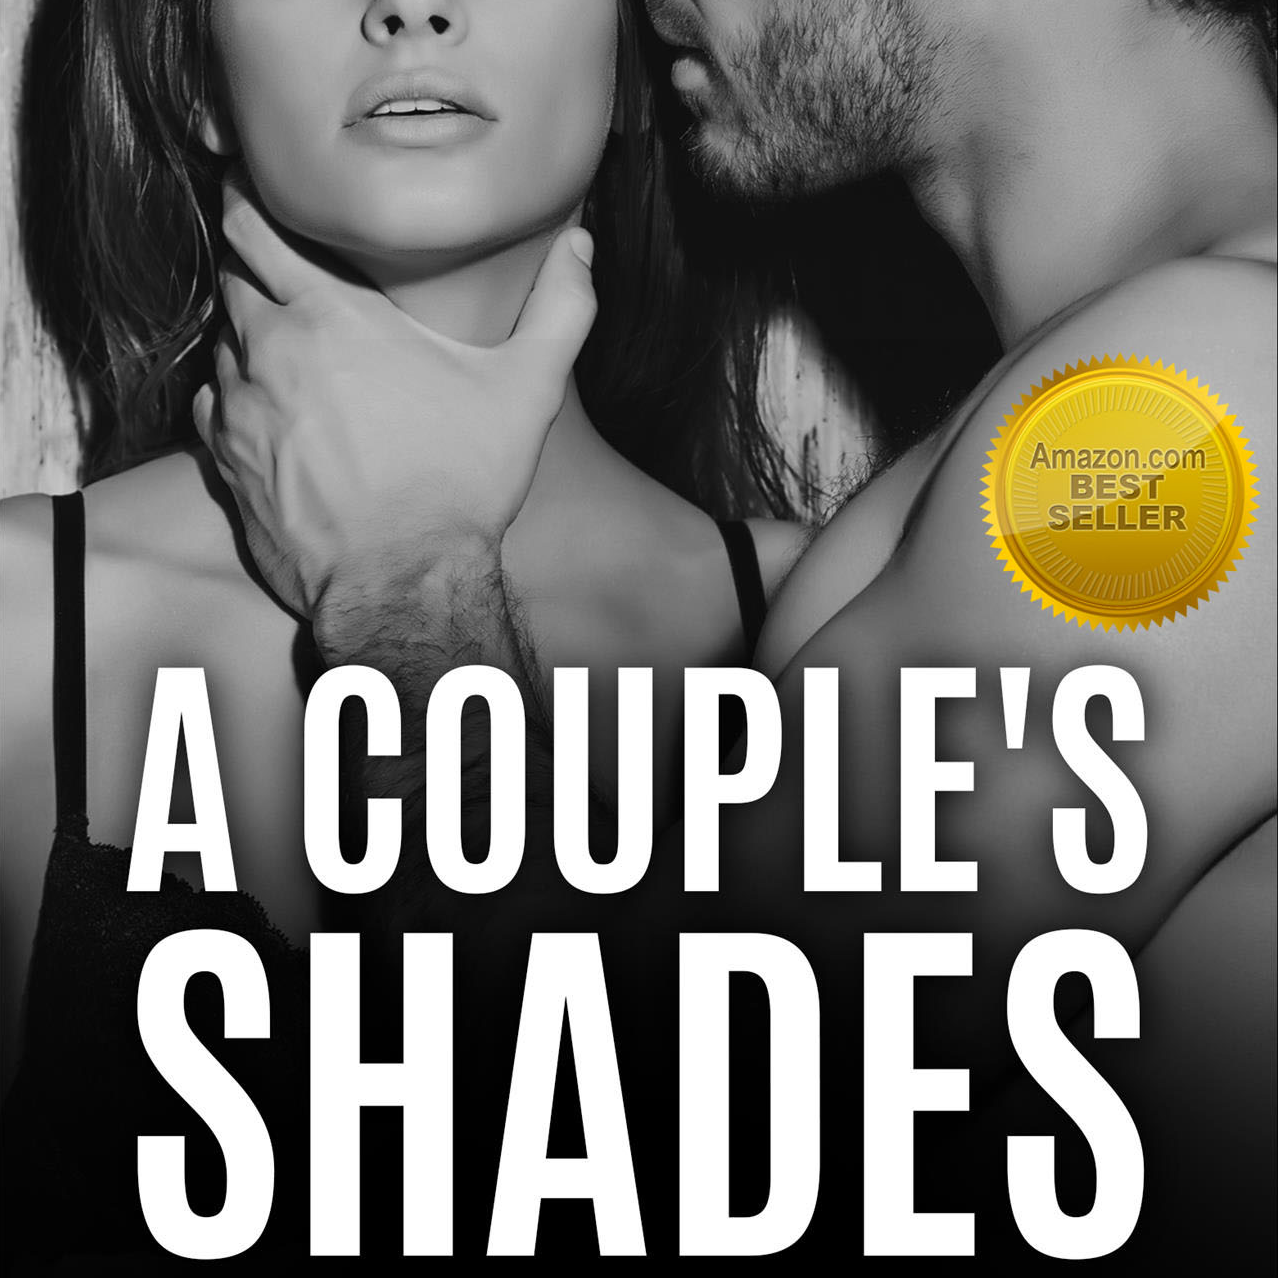 GET THE BOOK - Amazon Bestseller! A Couple's Shades of Grey: A Man and A Woman's Journey Into BDSM is about real people. Real BDSM.BUY ON AMAZON